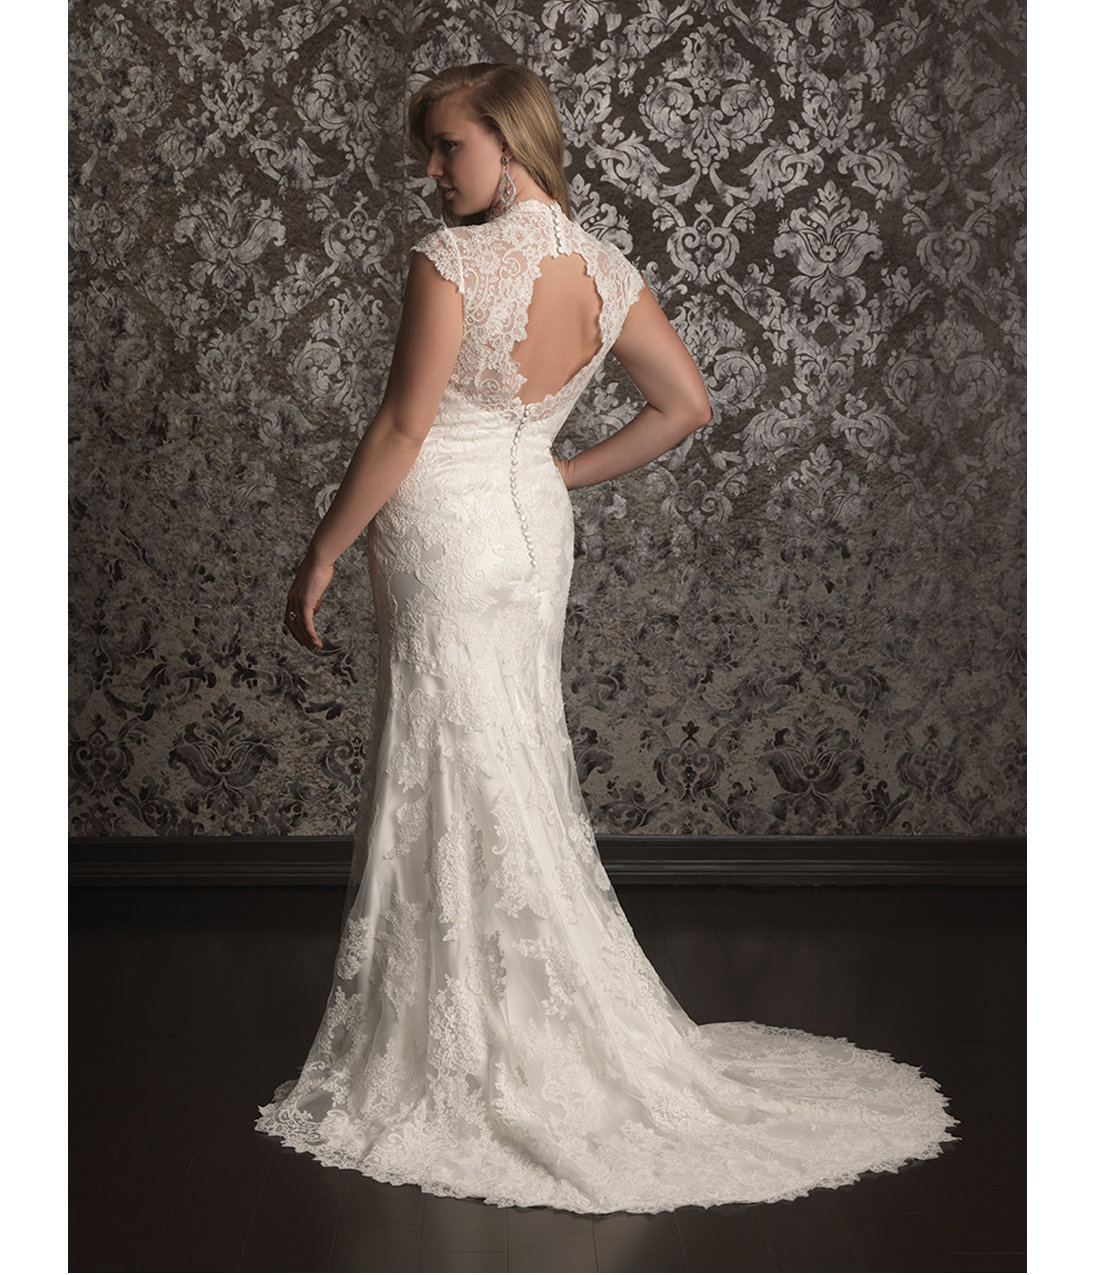 2013 Women Allure Bridal Ivory Lace & from Unique Vintage